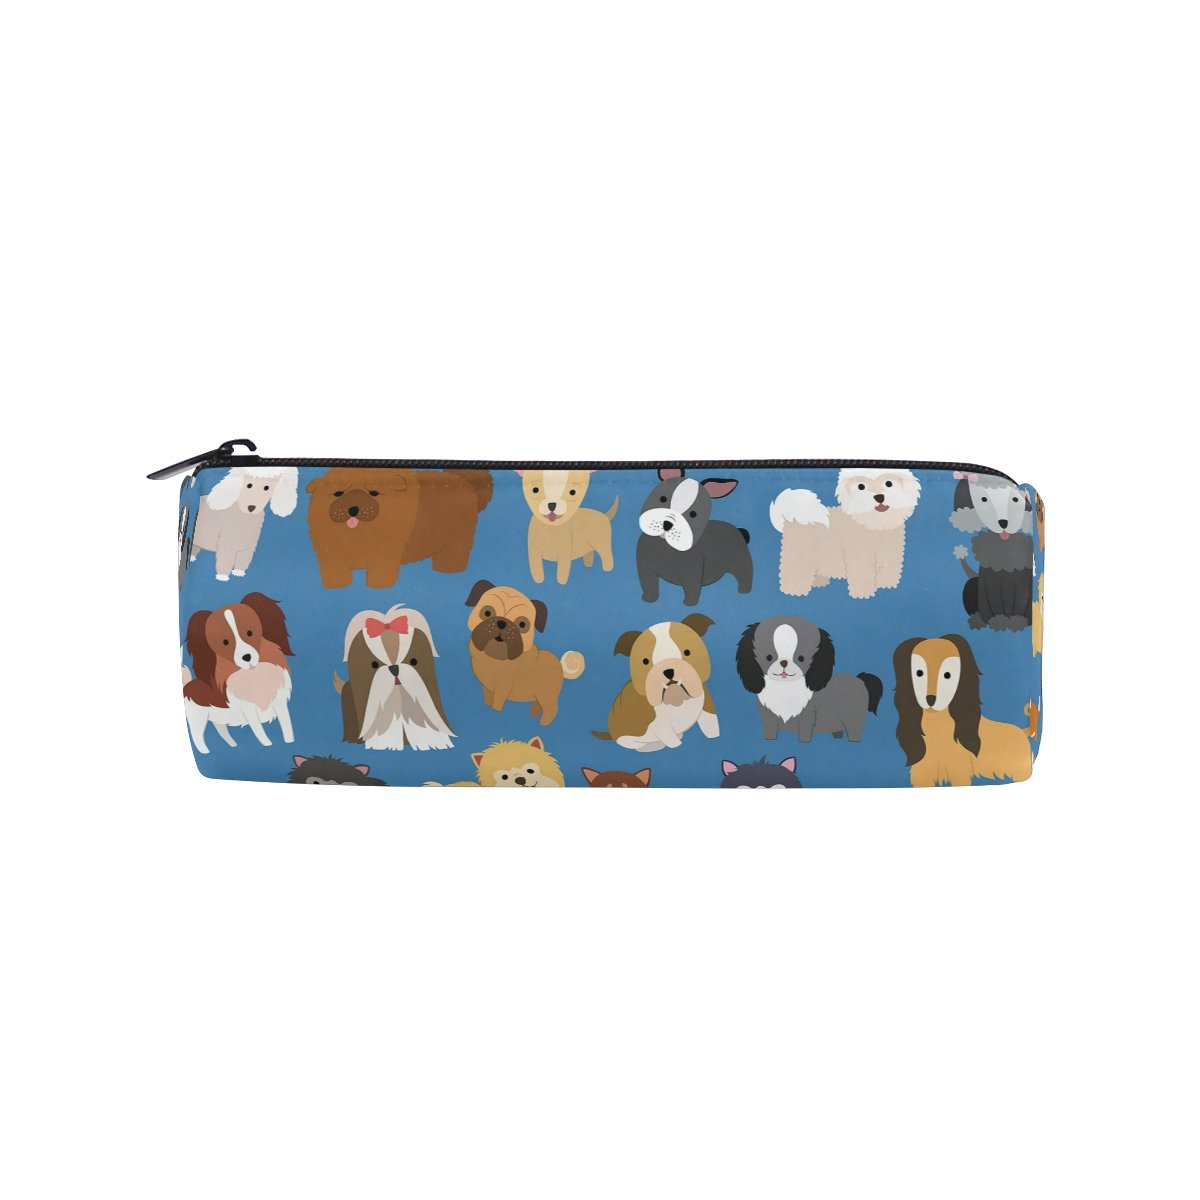 ALAZA Cute Dog and Puppy Set Animal Pencil Pen Case Pouch Bag with Zipper for Girls Kids School Student Stationery Office Supplies